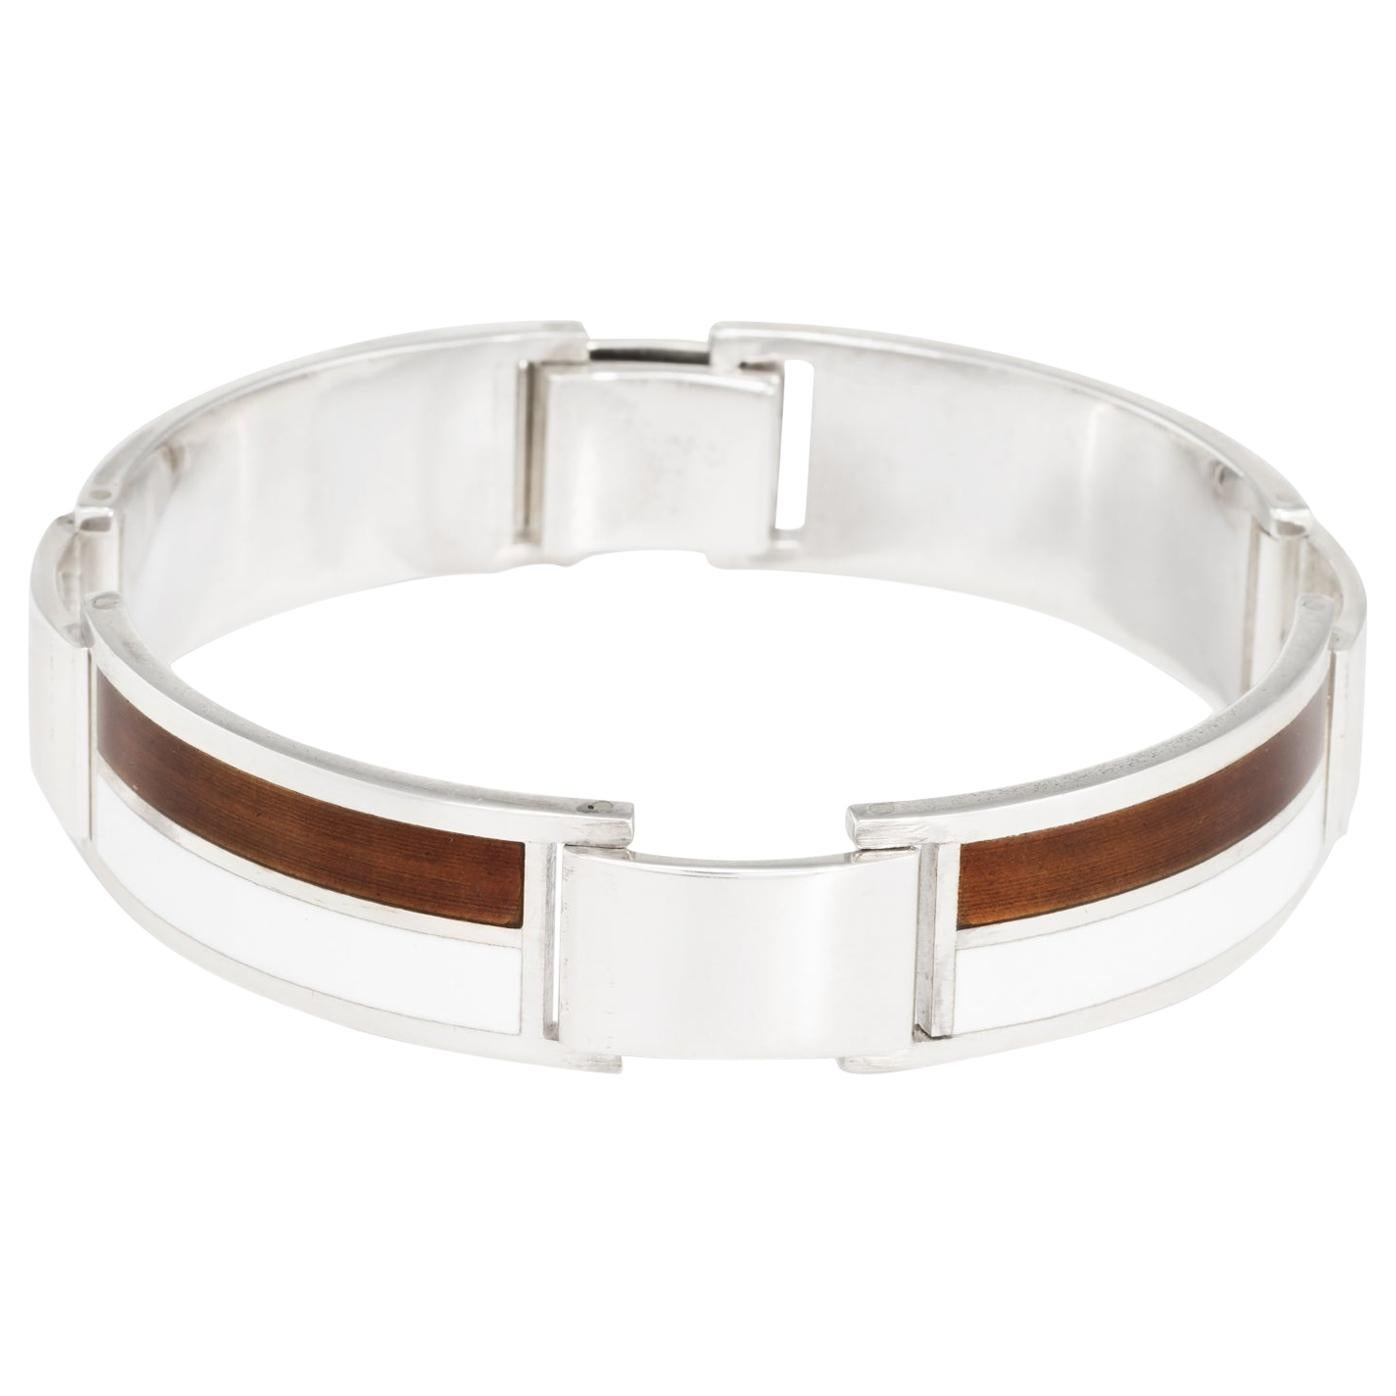 1970s Gucci Vintage Enamel Sterling Silver Bracelet Brown White Signed Jewelry